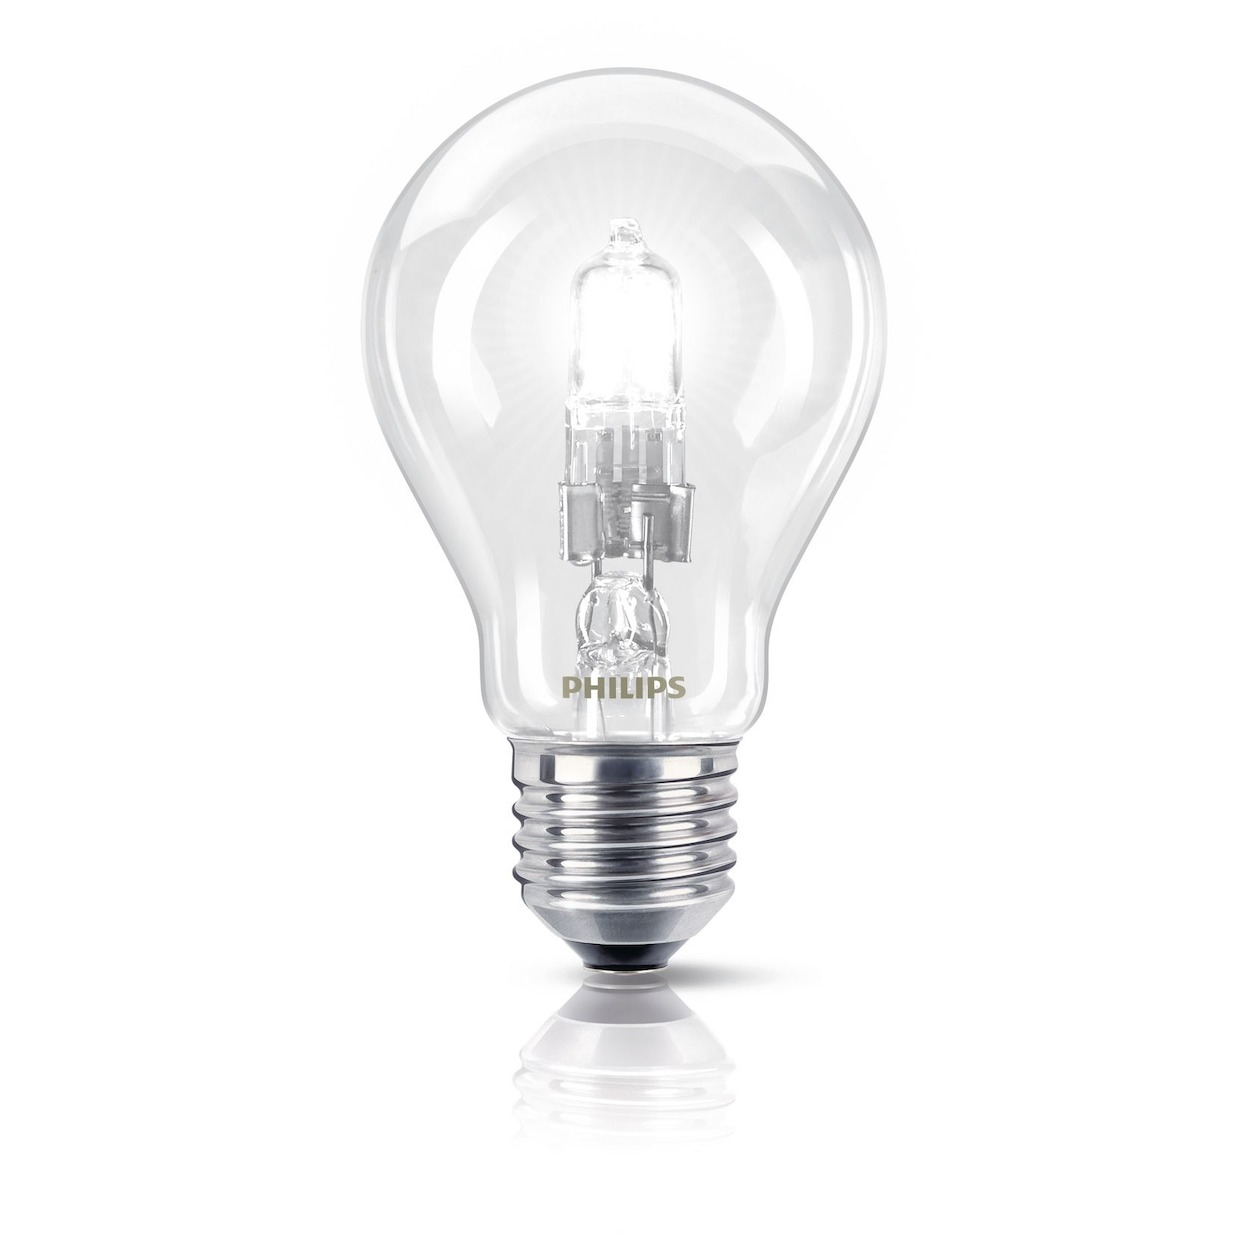 Philips halogeenlamp E27 53W 850Lm classic